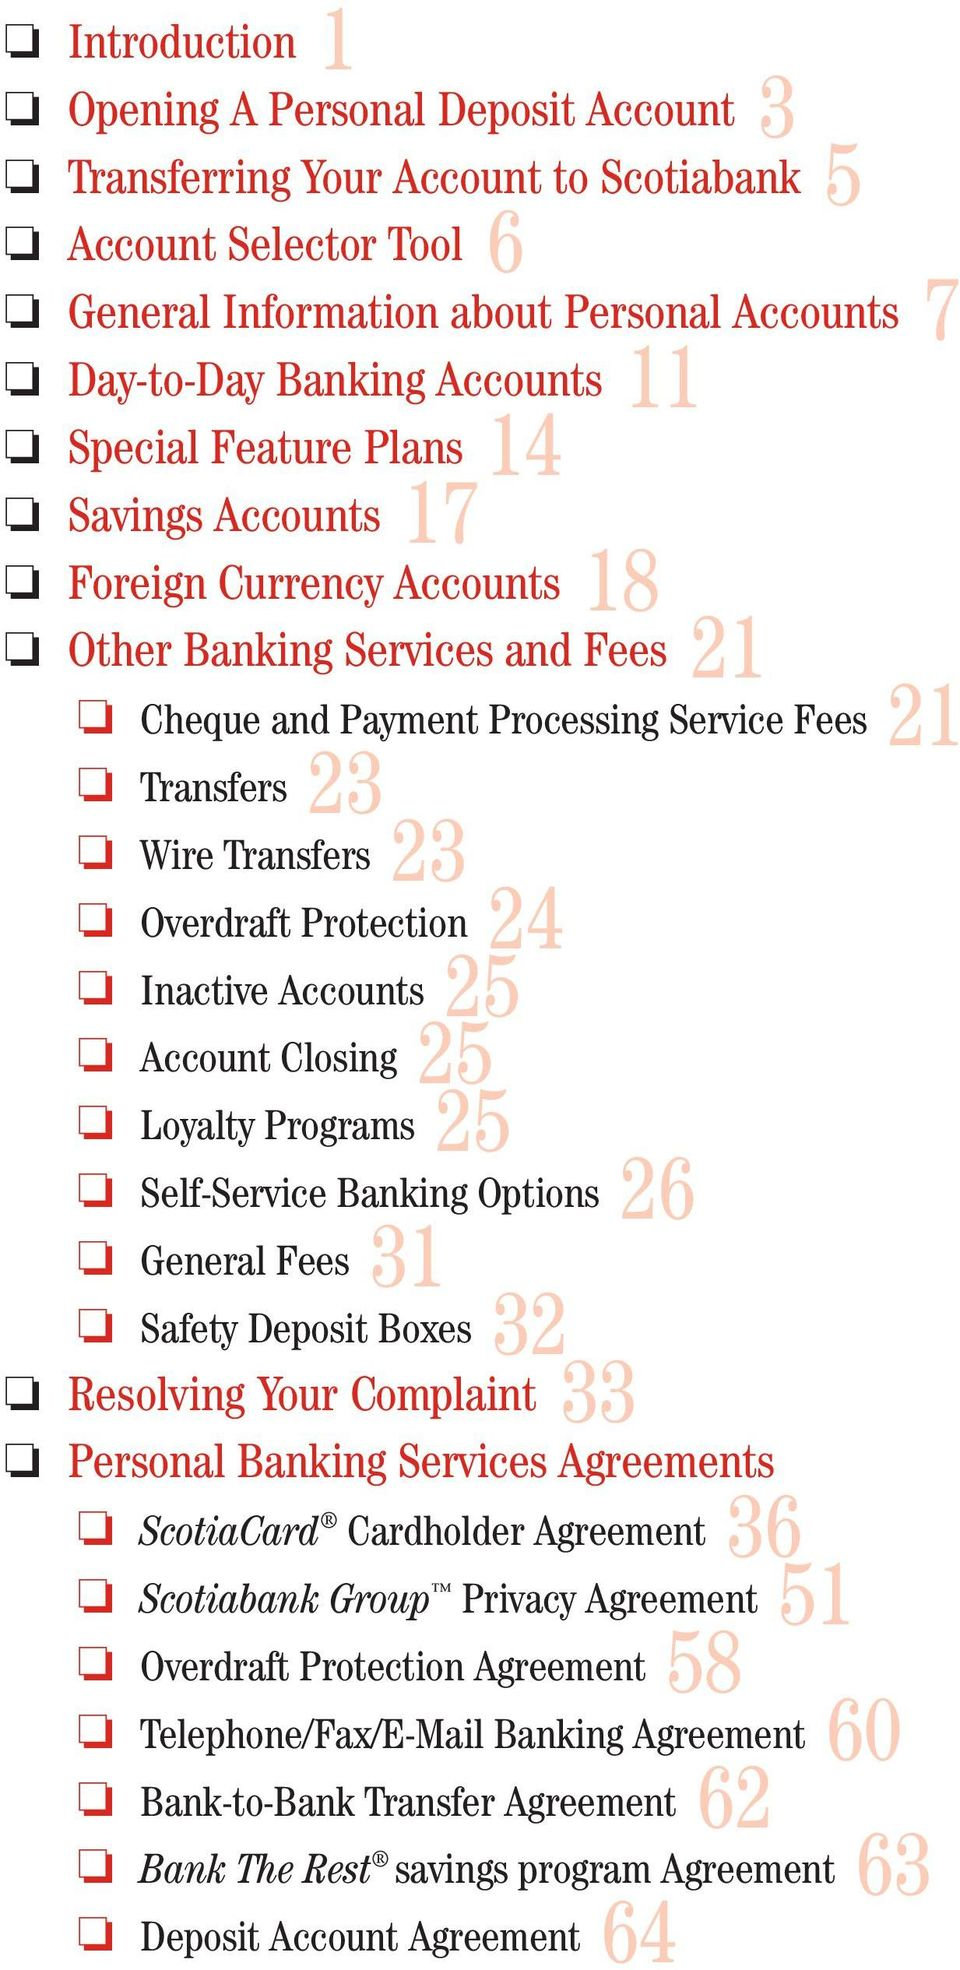 Protection 24 Inactive Accounts 25 Account Closing 25 Loyalty Programs 25 Self-Service Banking Options 26 General Fees 31 Safety Deposit Boxes 32 Resolving Your Complaint 33 Personal Banking Services